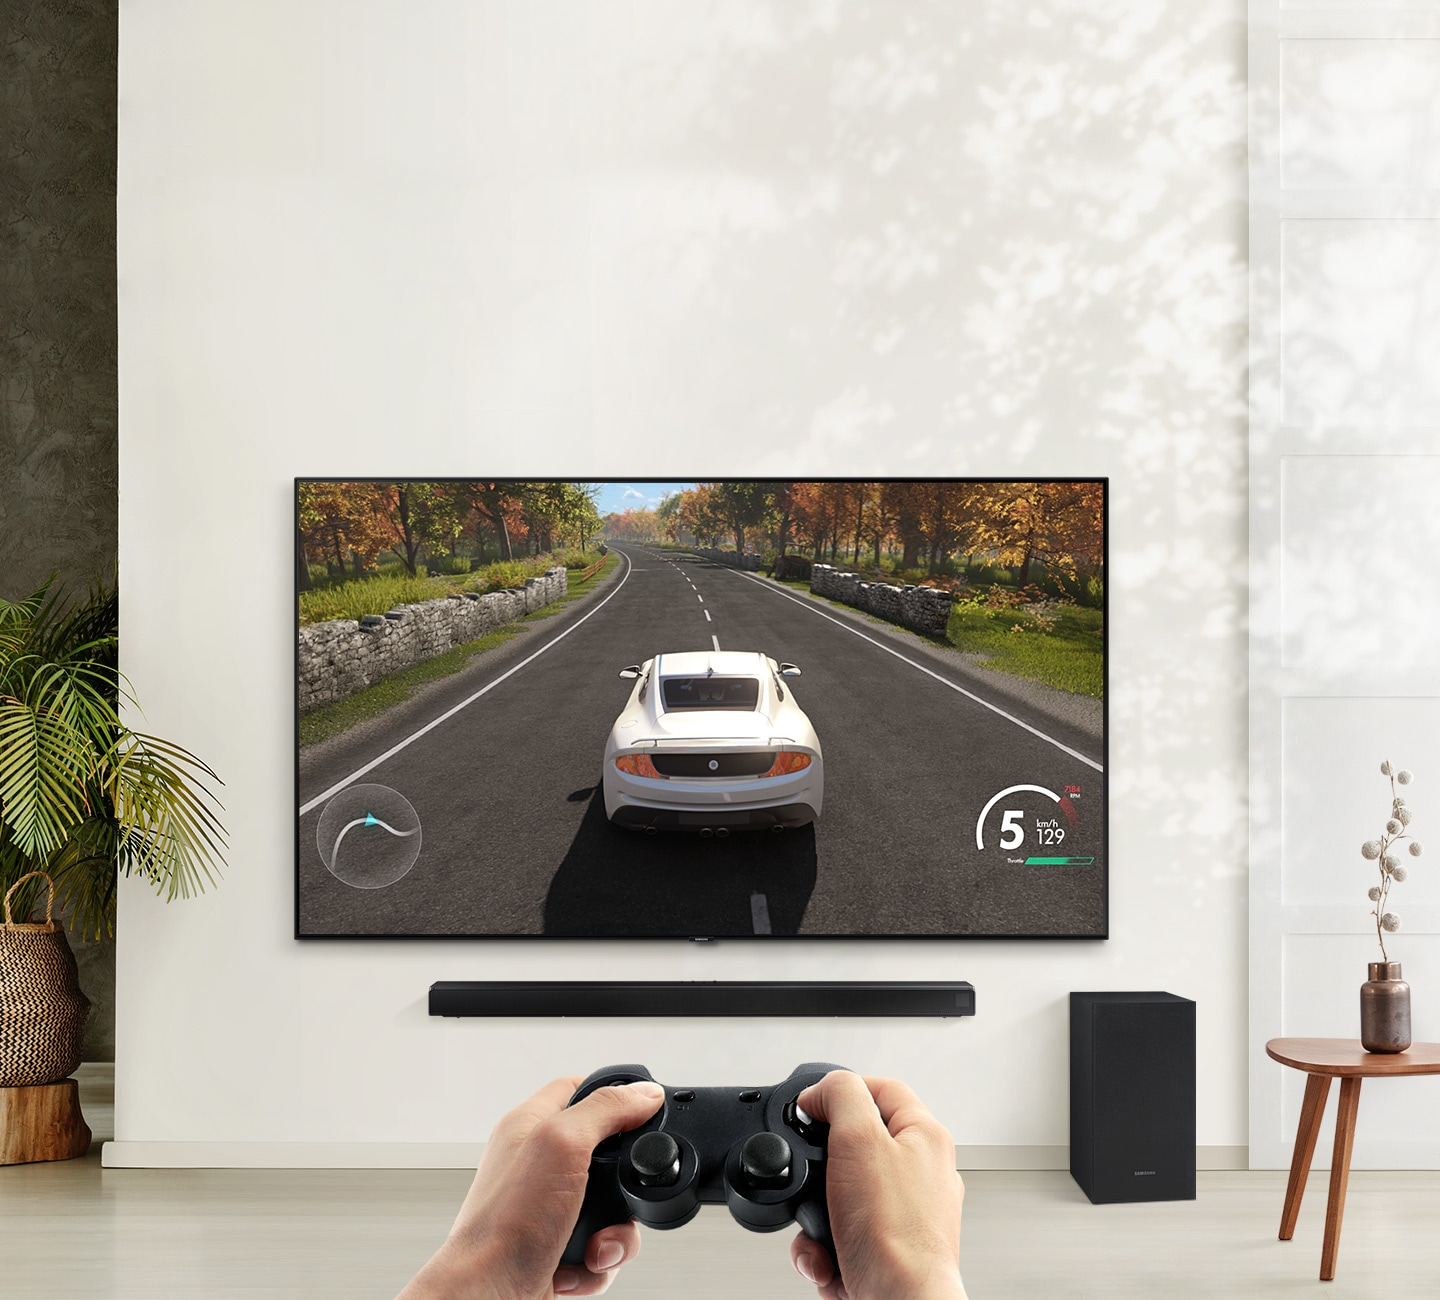 A user is enjoying soundbar's Game Mode while playing a racing game on their TV connected to soundbar and subwoofer.